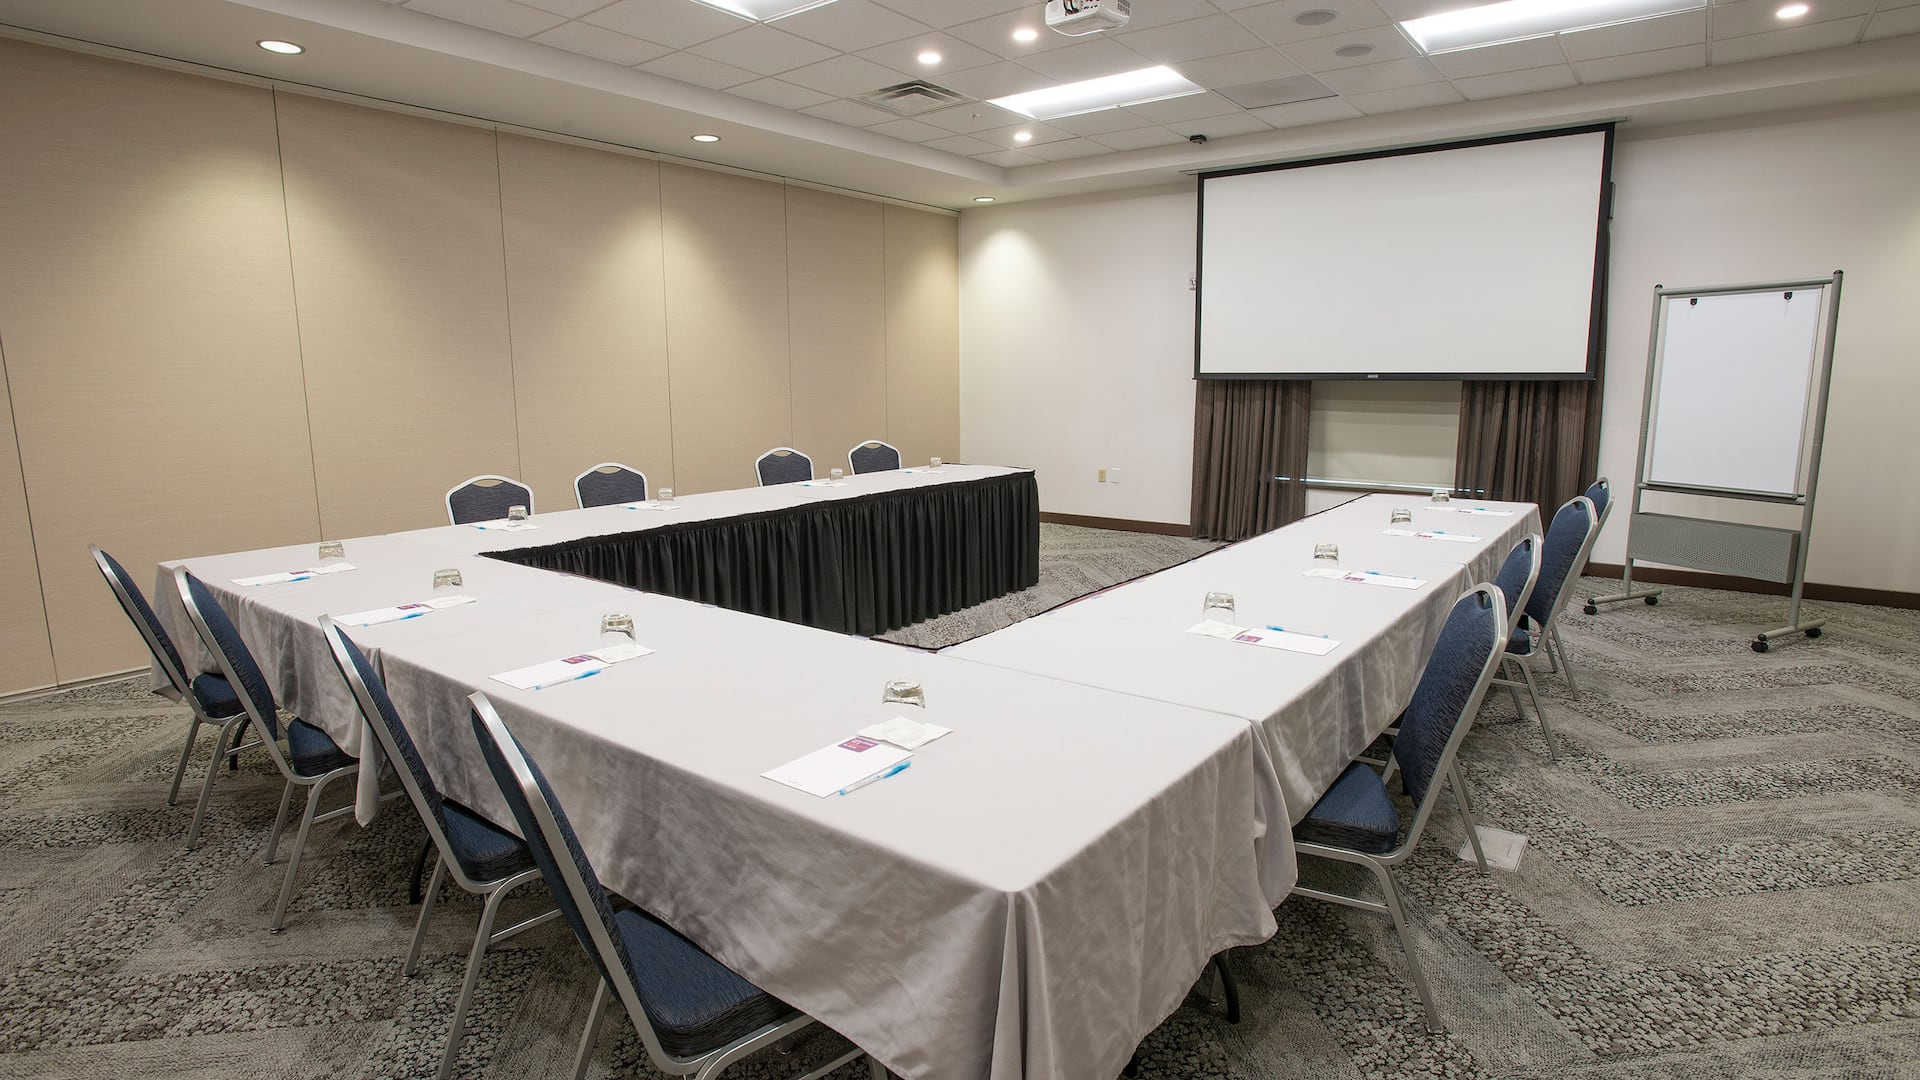 U-shaped meeting set-up